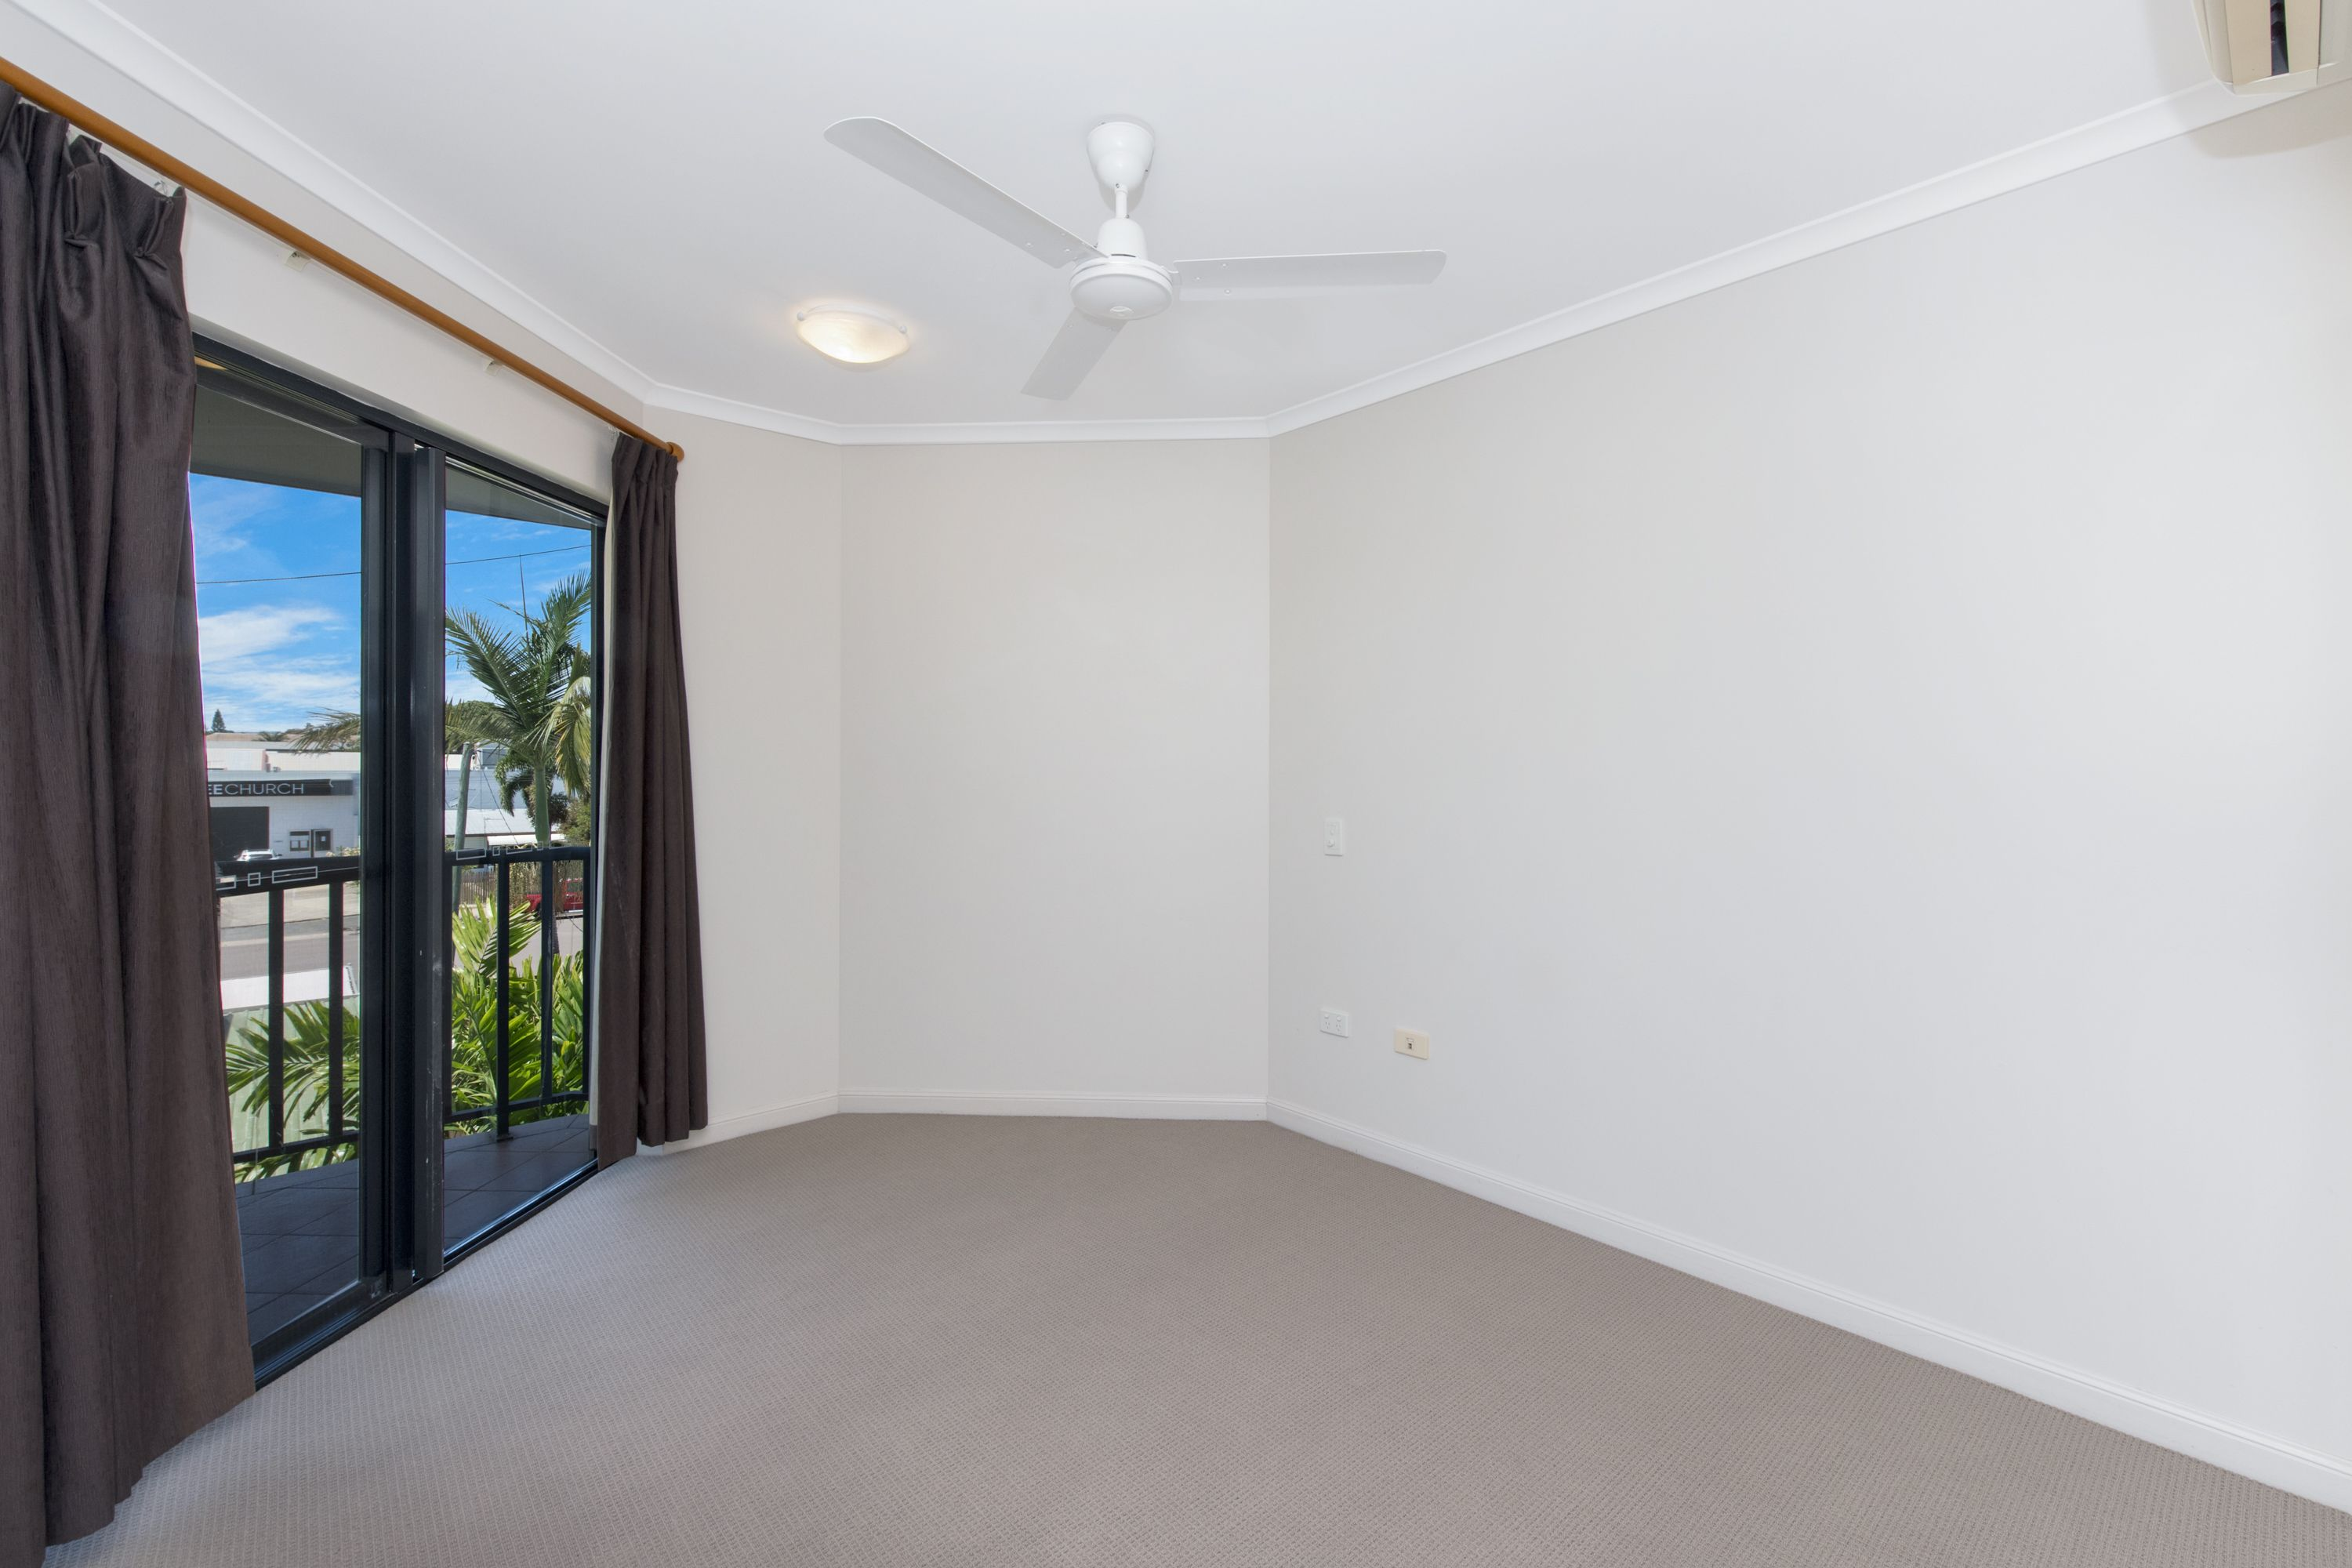 5/106 Eyre Street, North Ward, QLD 4810